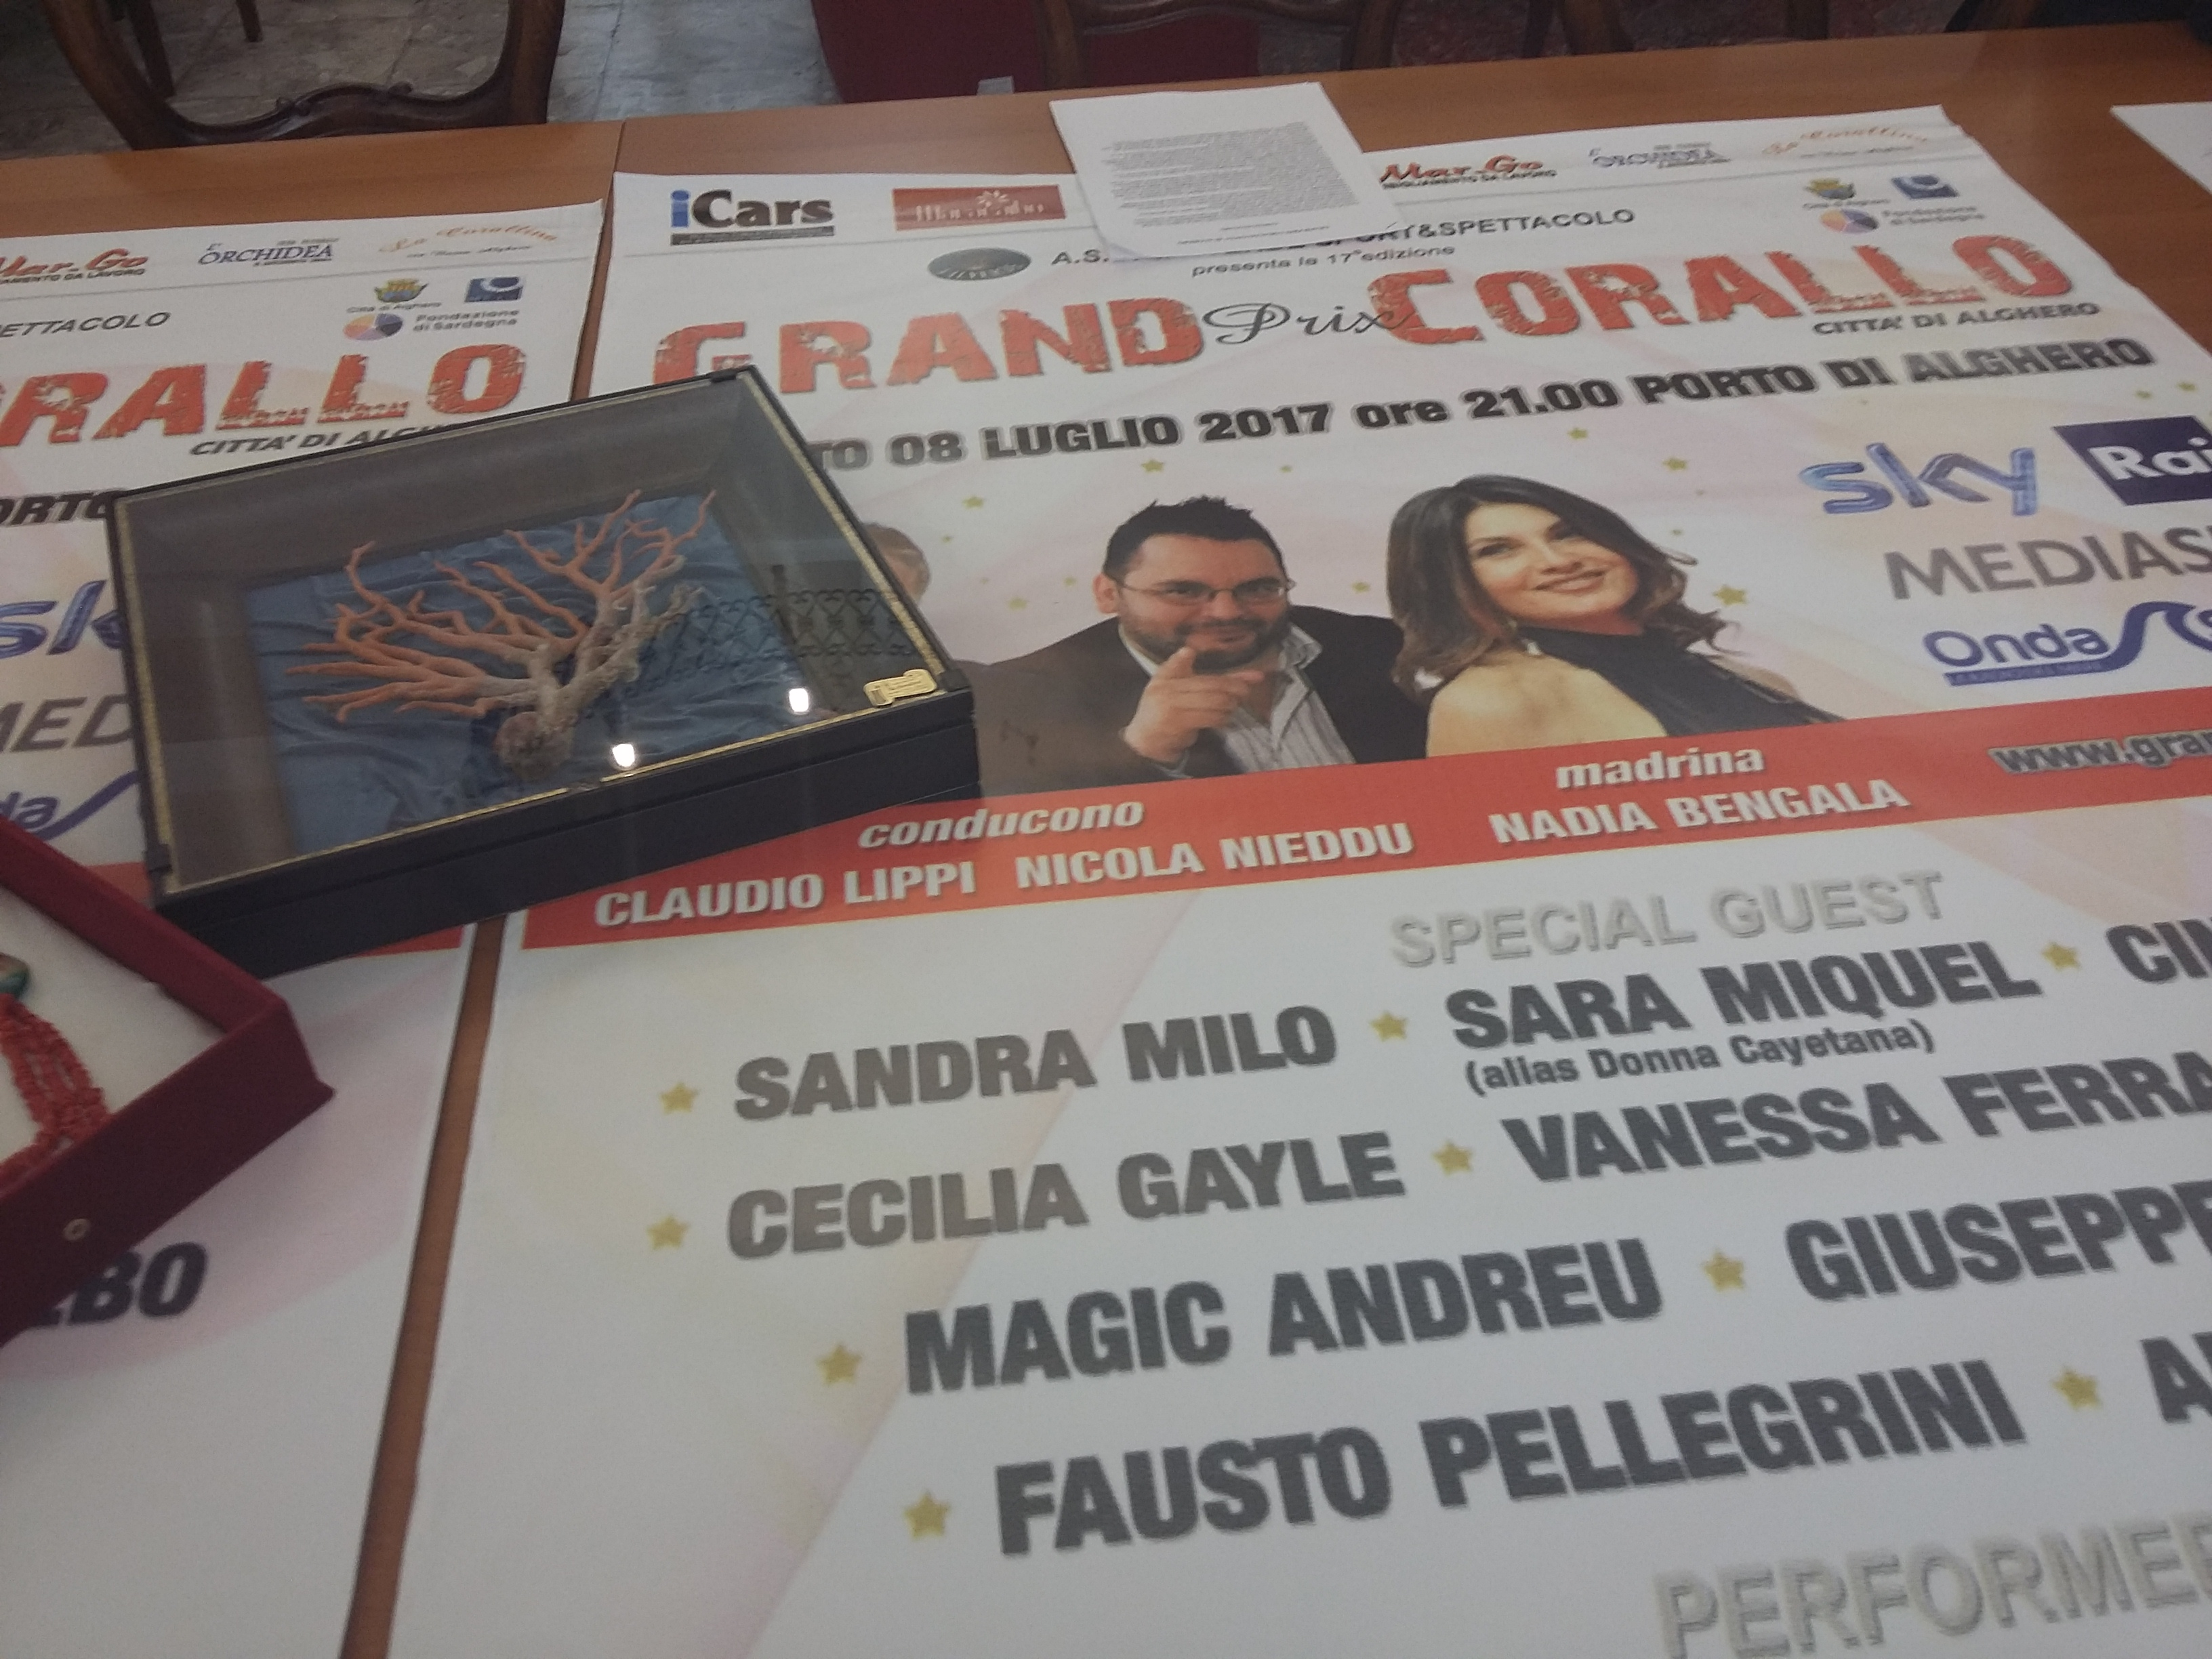 Grand Prix Corallo scalda i motori